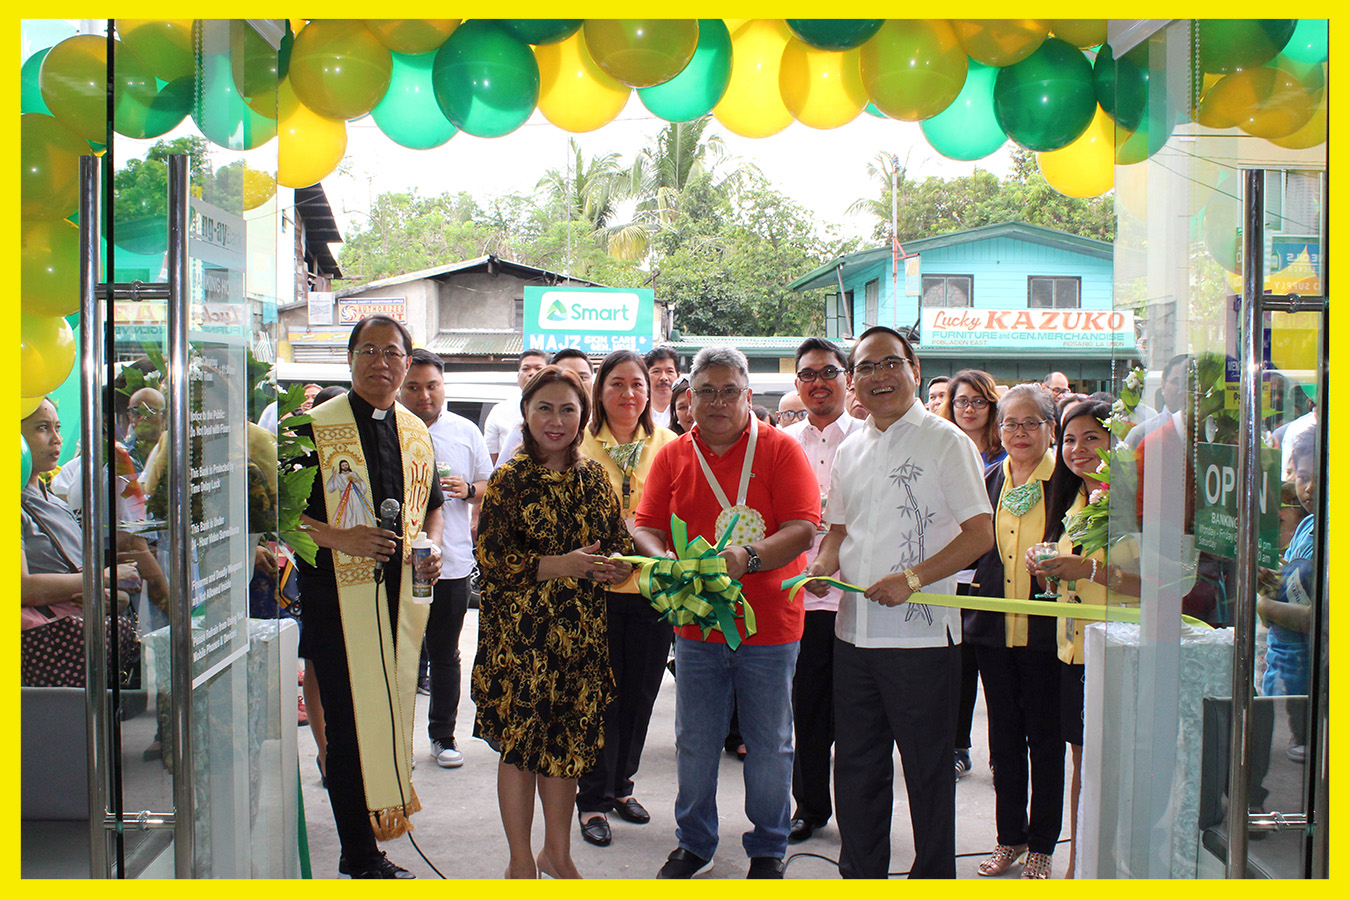 From left to right: Rev. Fr Noel Peter Lazo , Former PRC Board of Dentistry Chair Dra. Rosita Canlas-Nisce, District II Board Member, Hon. Bellarmin Flores II, Vice President - Operations Ives Jesus Nisce and Rang-ay Bank President & CEO, Ives Nisce